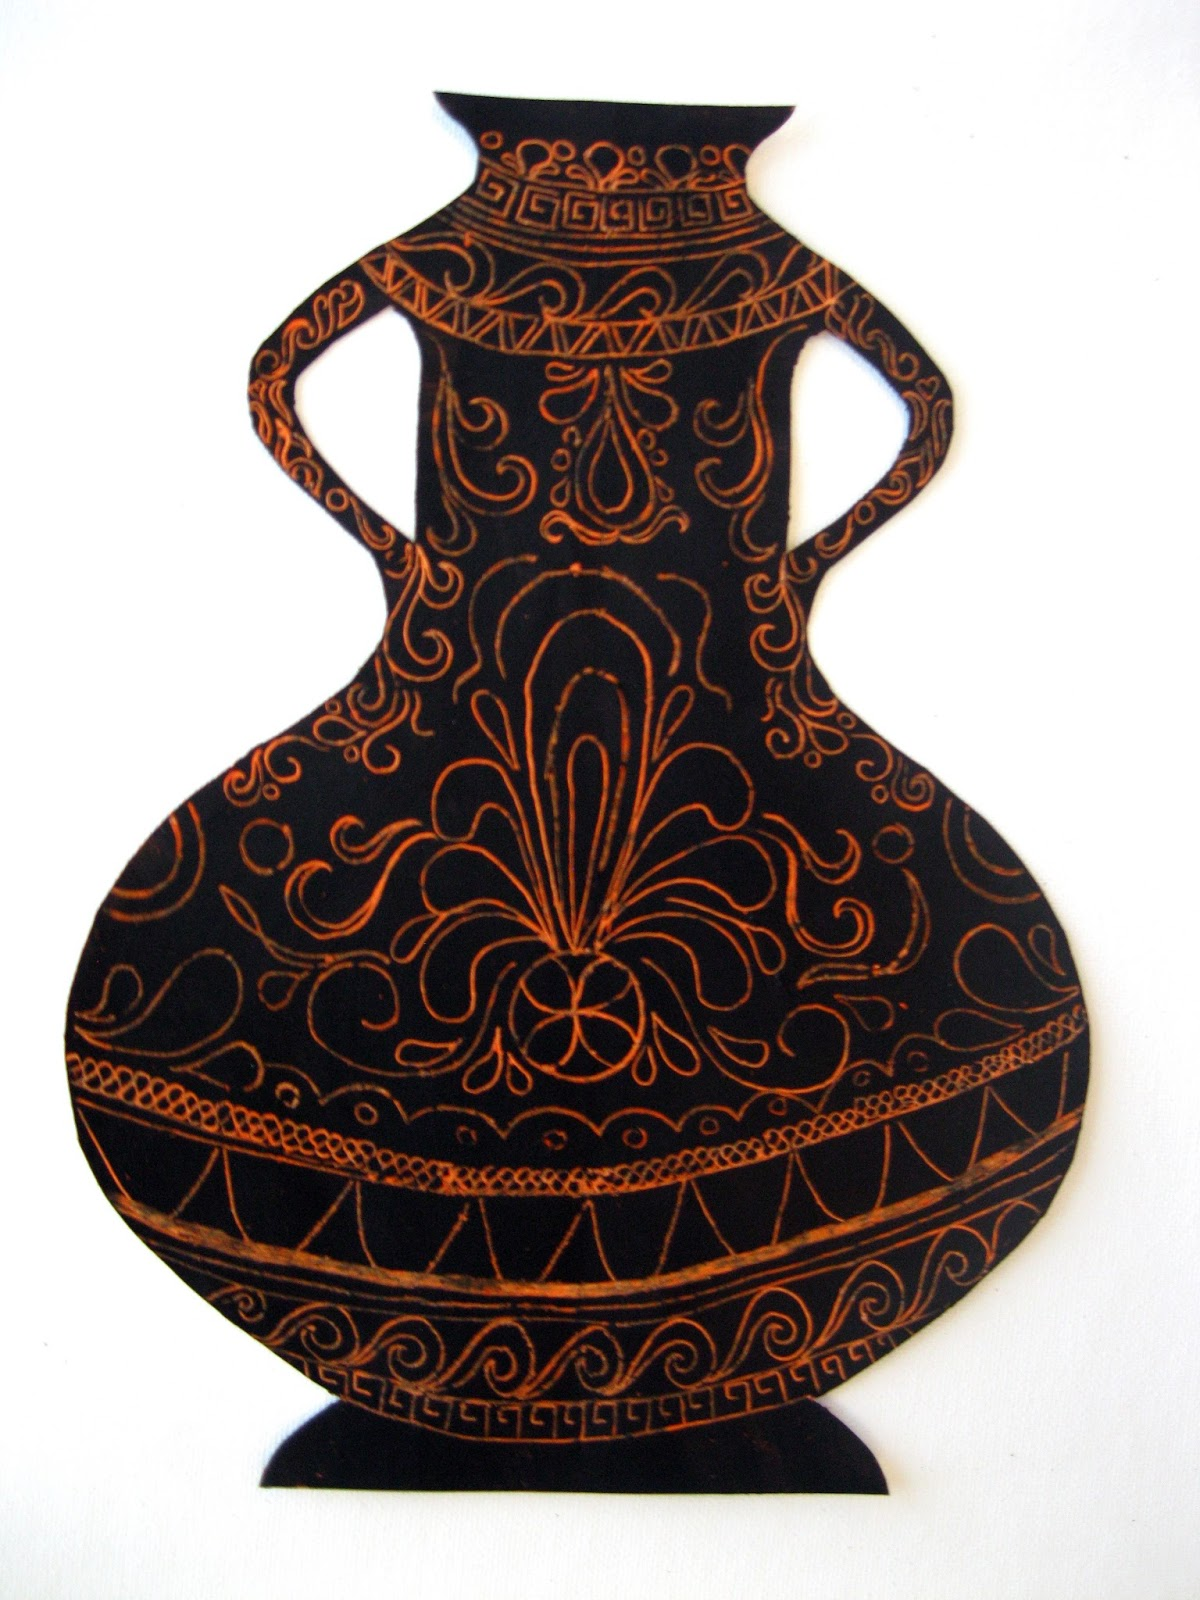 More greek vases art class ideas to do this fun and instructional project reviewsmspy